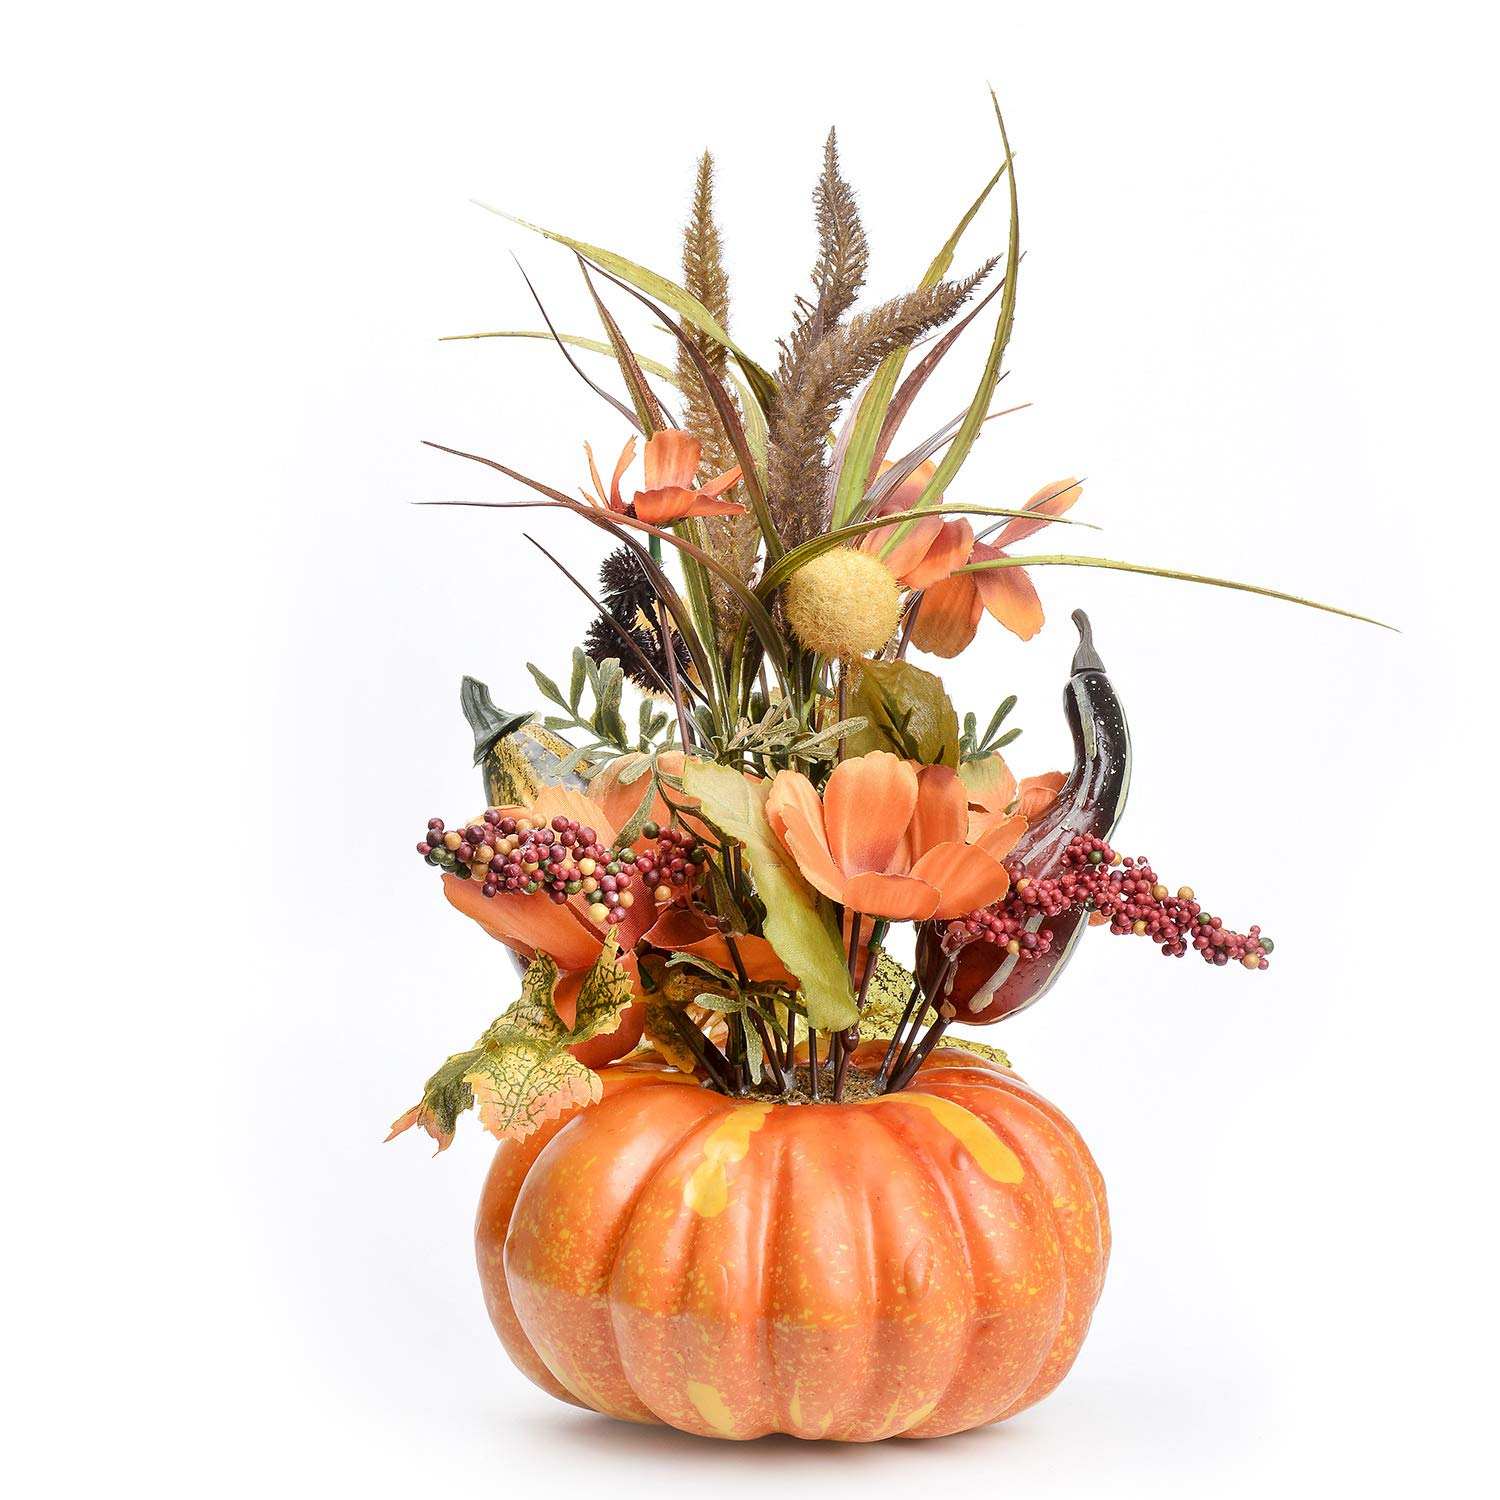 FAVOWREATH Vitality Series FAVO-W128 Handmade 14 inch Pumpkin Vine Halloween Supplies for Fall Festival Front Door/Wall/Fireplace Every Day Nearly Natural Home Hanger Decor